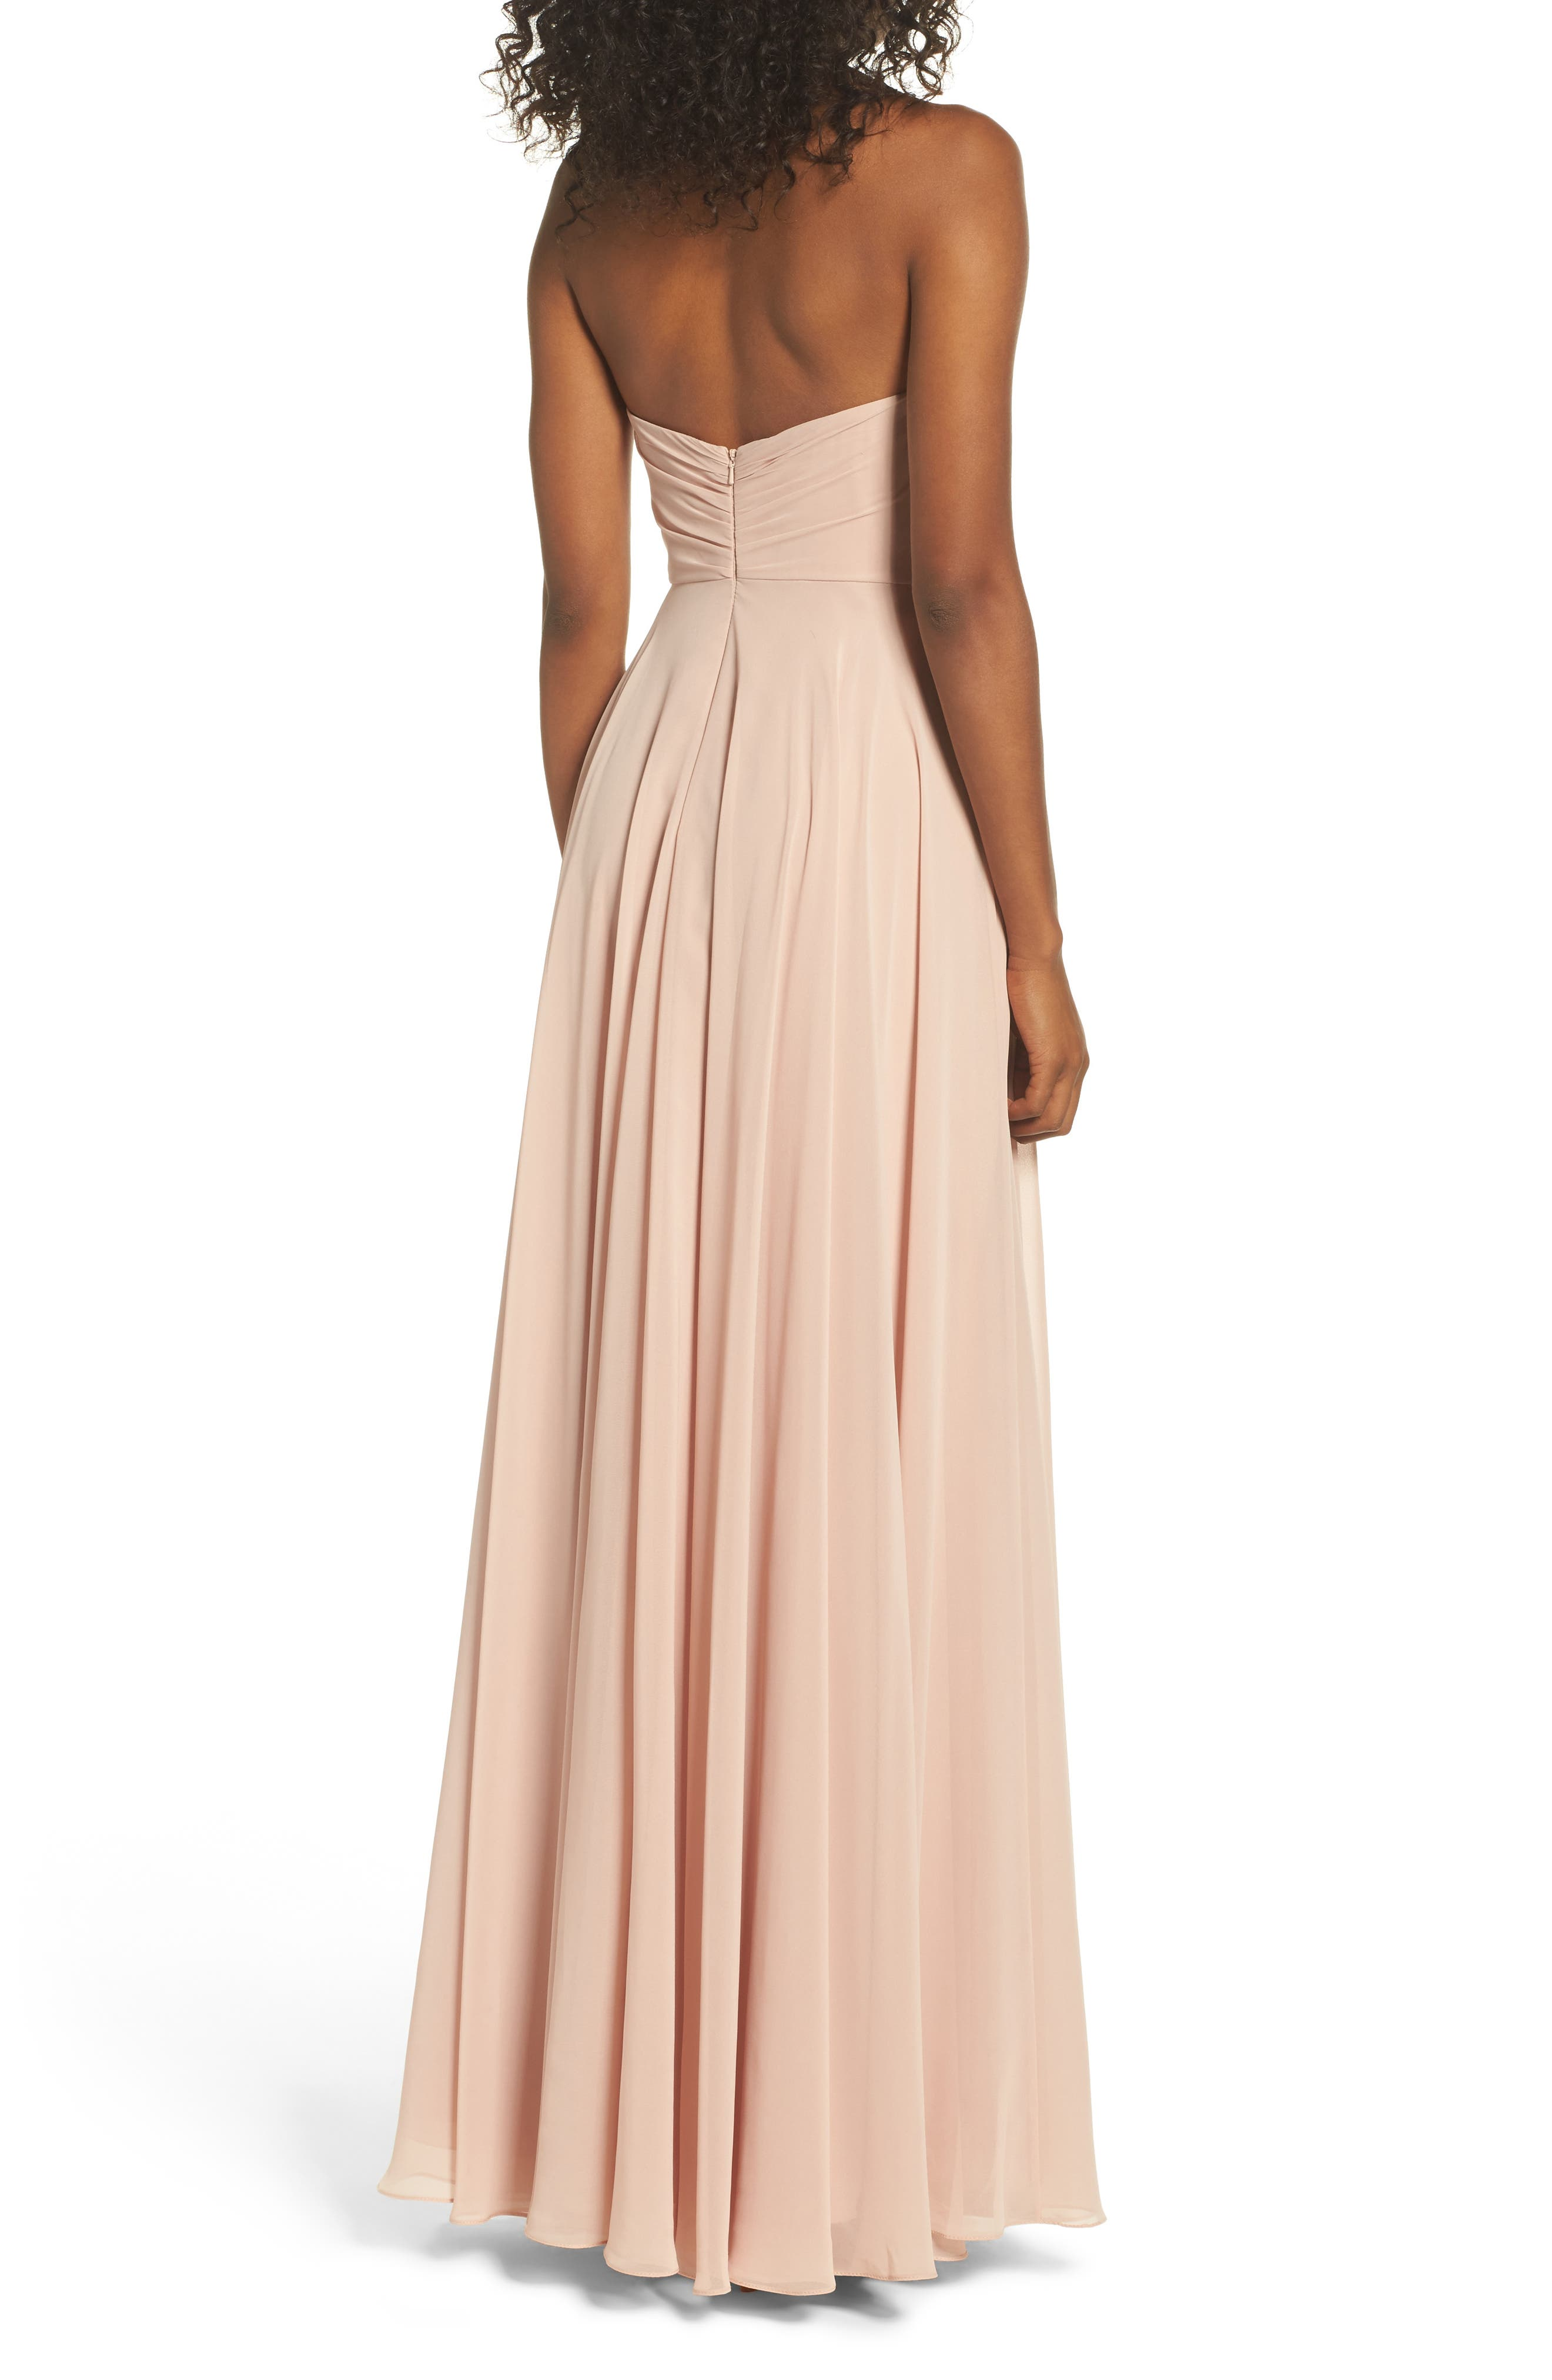 Adeline Strapless Chiffon Gown,                             Alternate thumbnail 2, color,                             Desert Rose